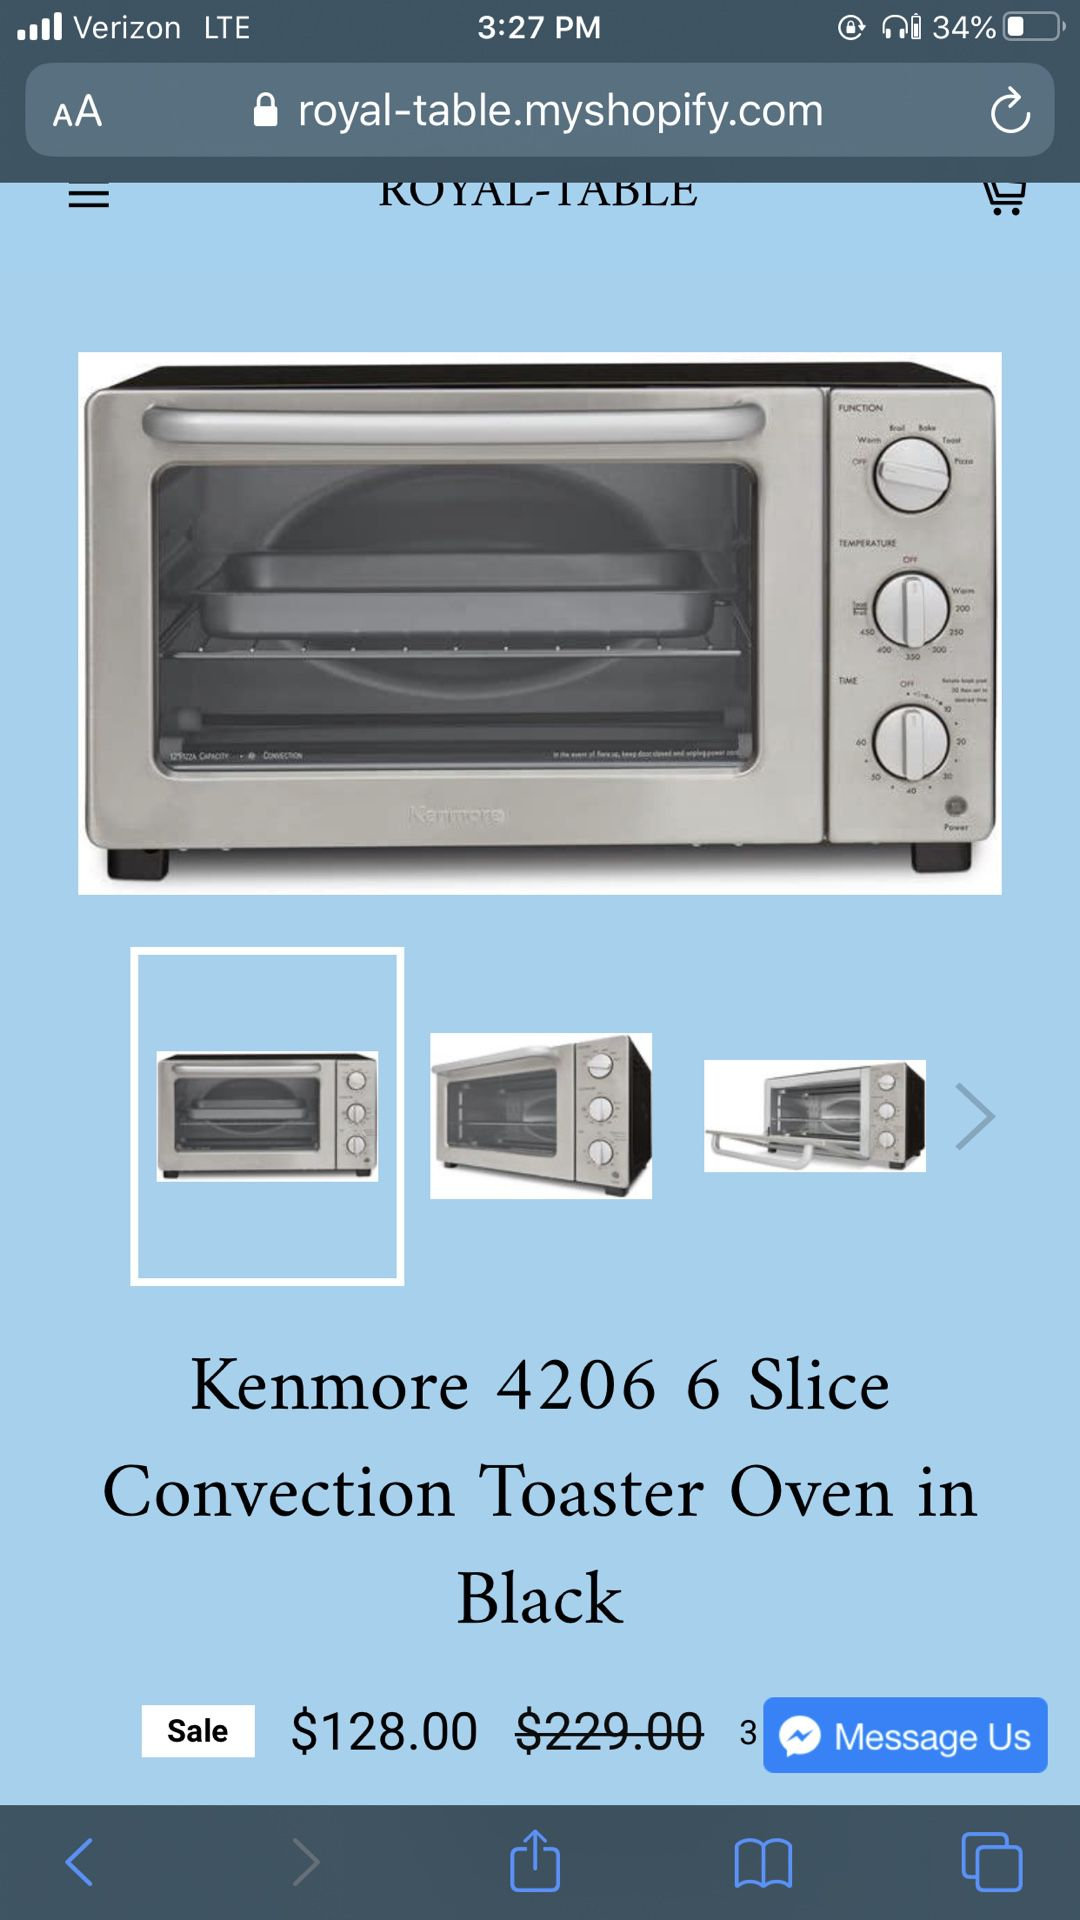 Kenmore Toaster Oven